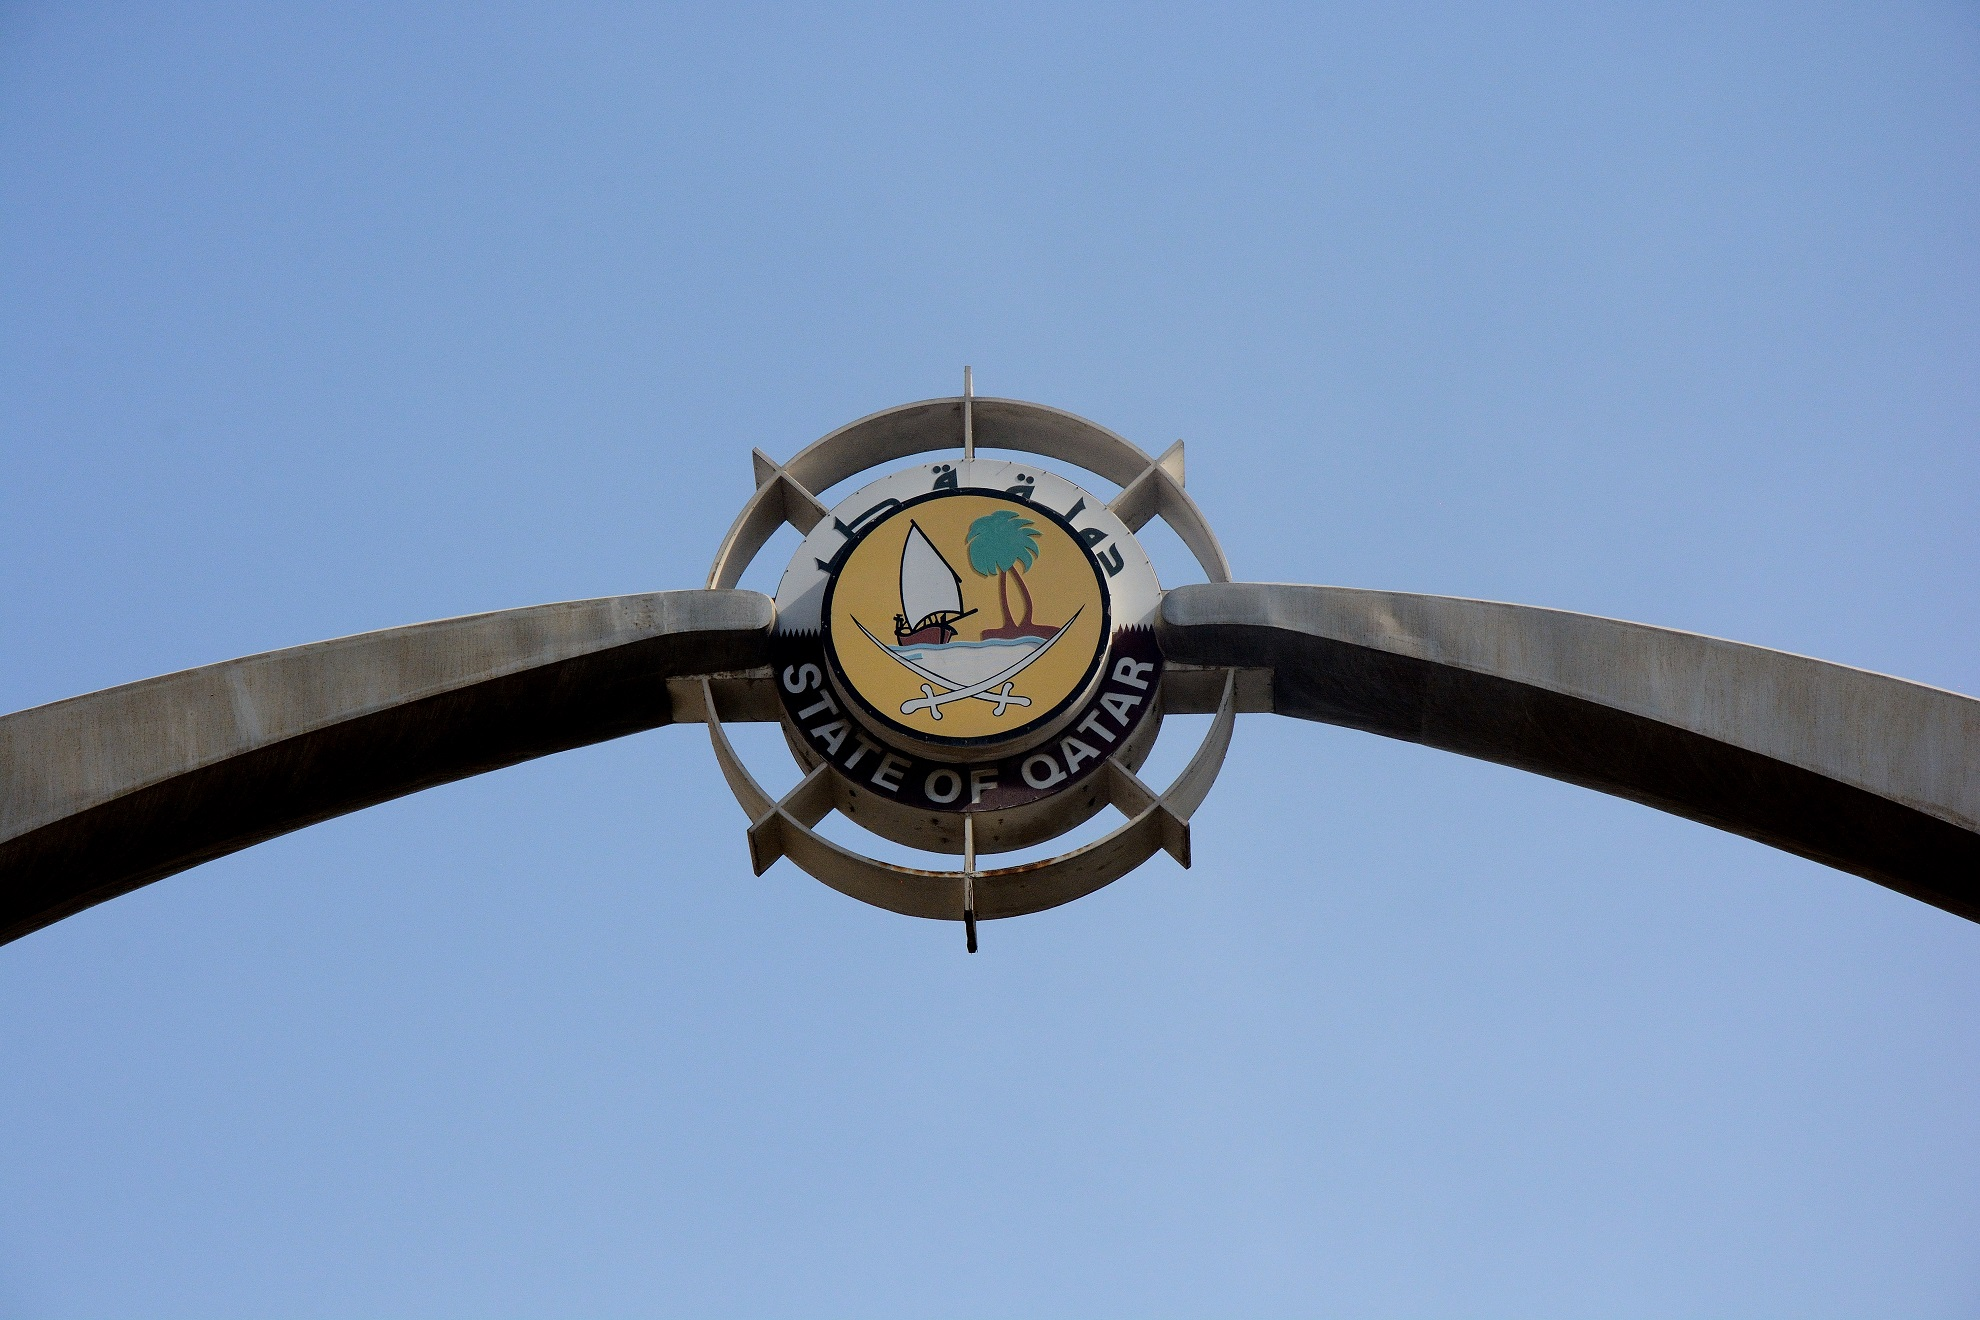 Emblem of the city over one of its main roads